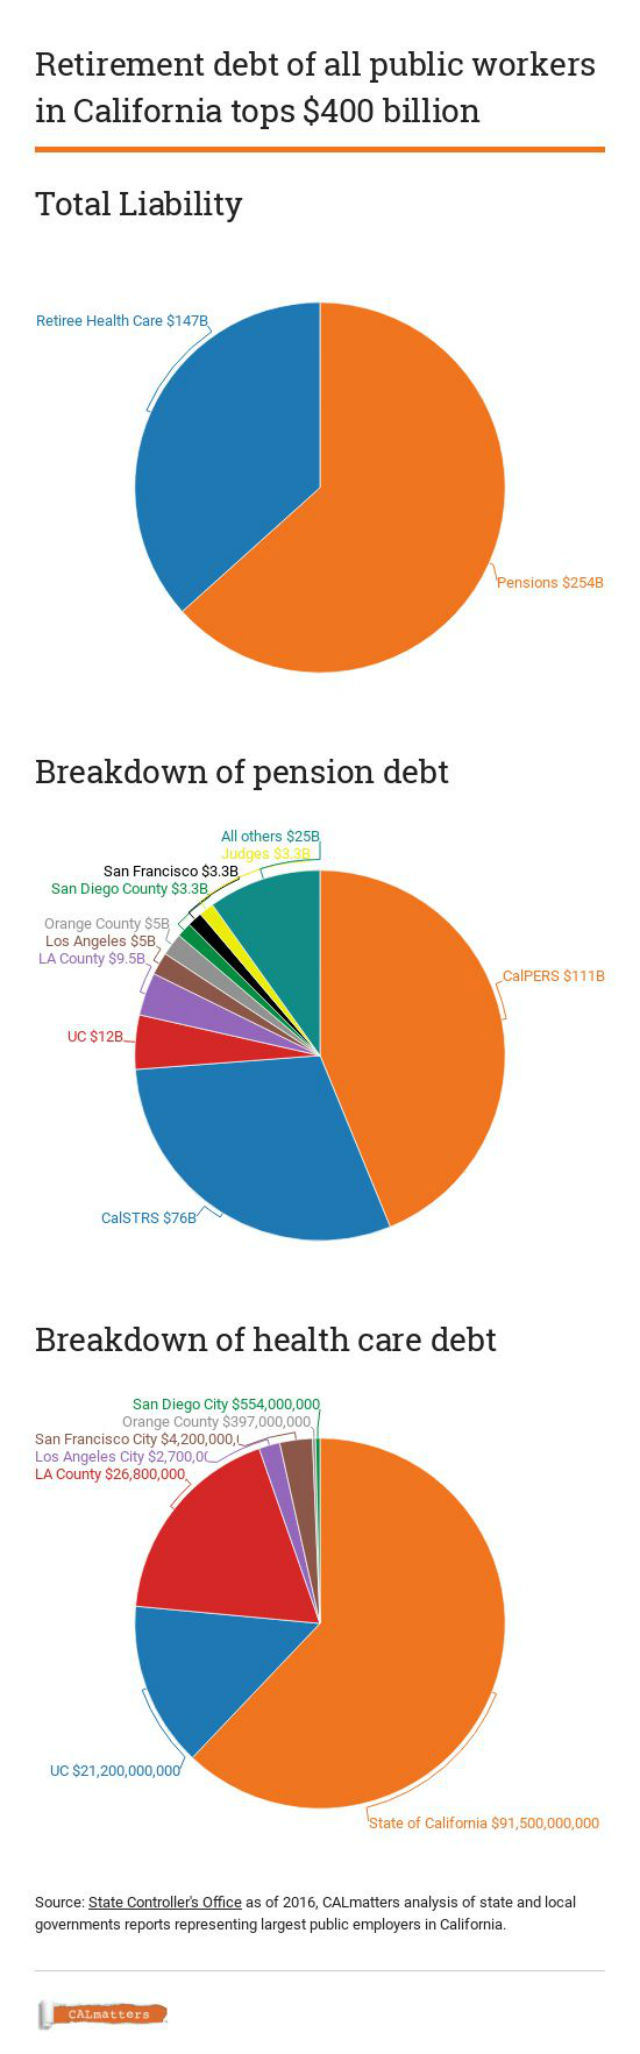 Chart details California's public pension debt